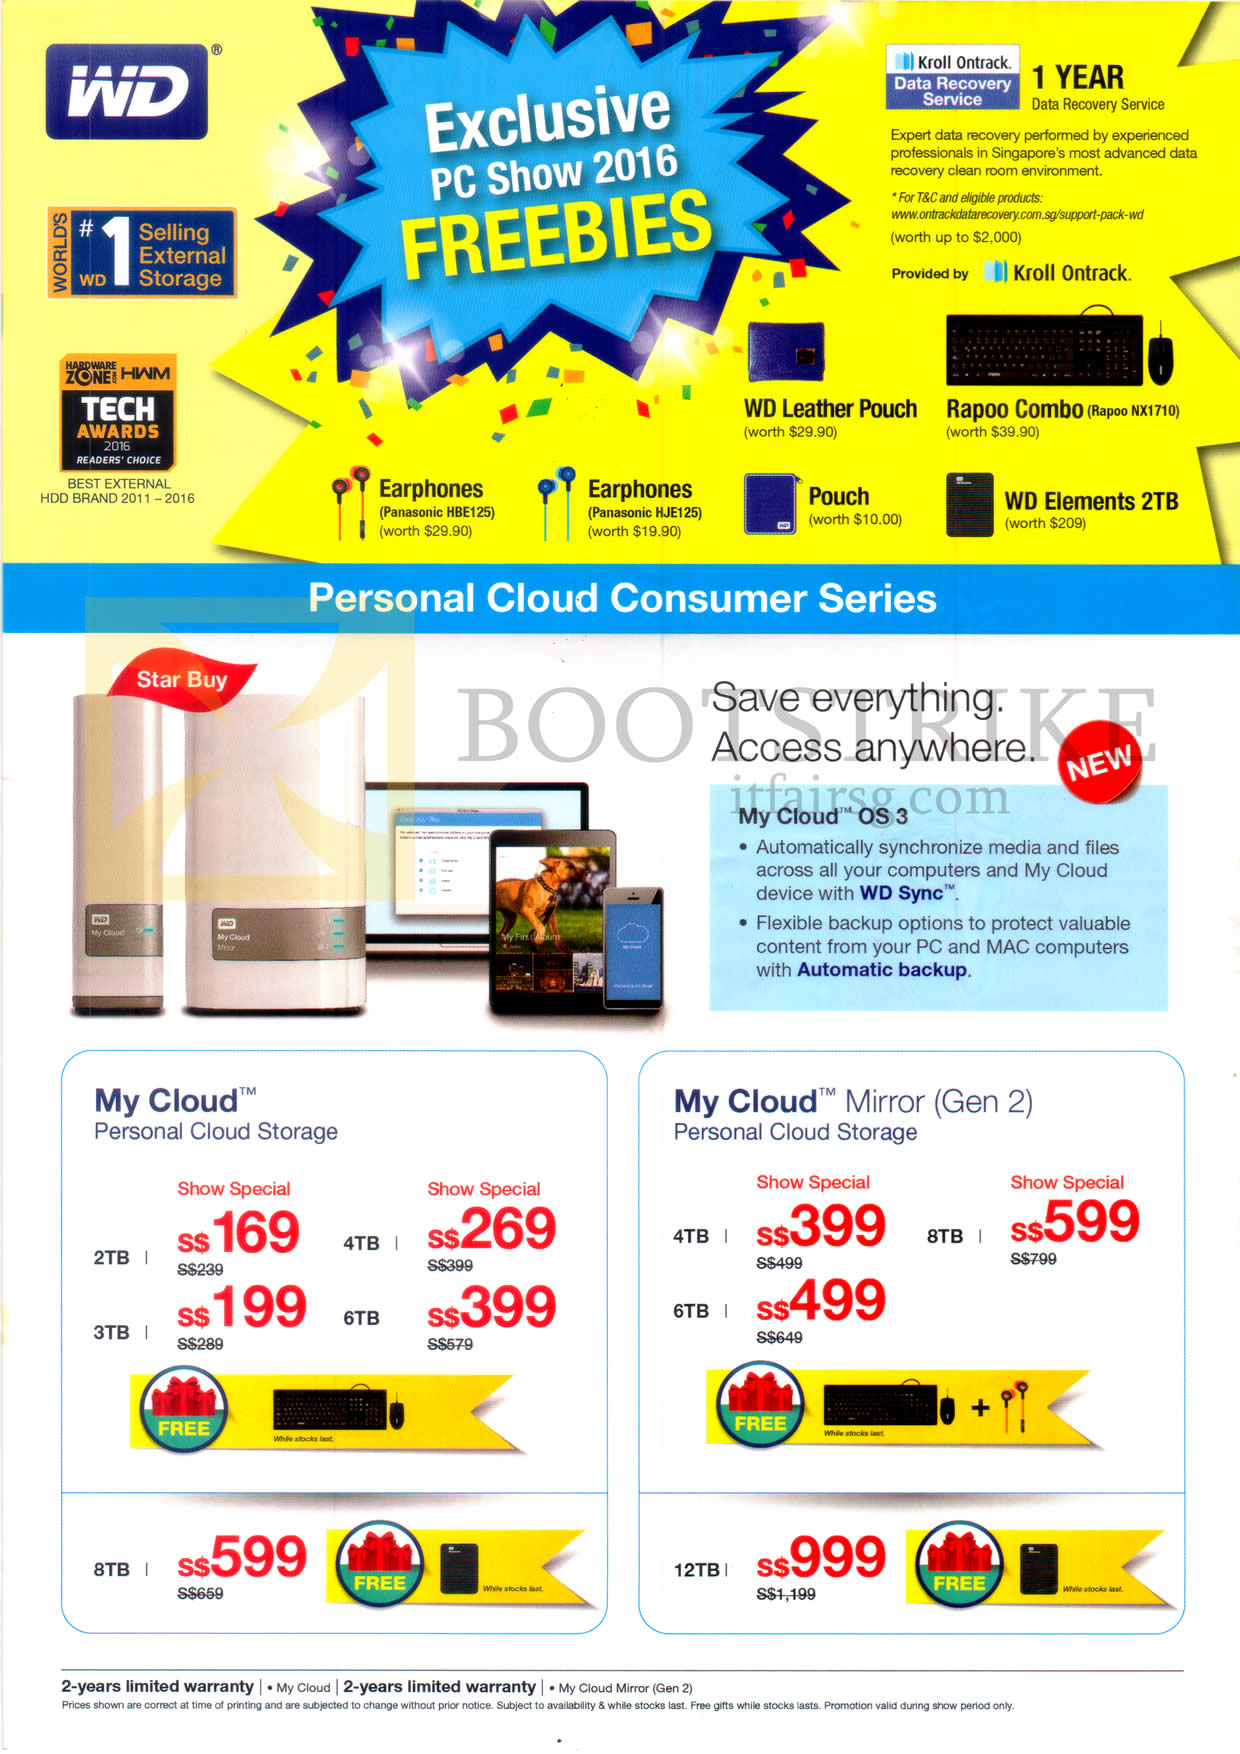 PC SHOW 2016 price list image brochure of Western Digital Personal Cloud Consumer Services My Cloud OS3, Personal Cloud Storage, Mirror Gen 2